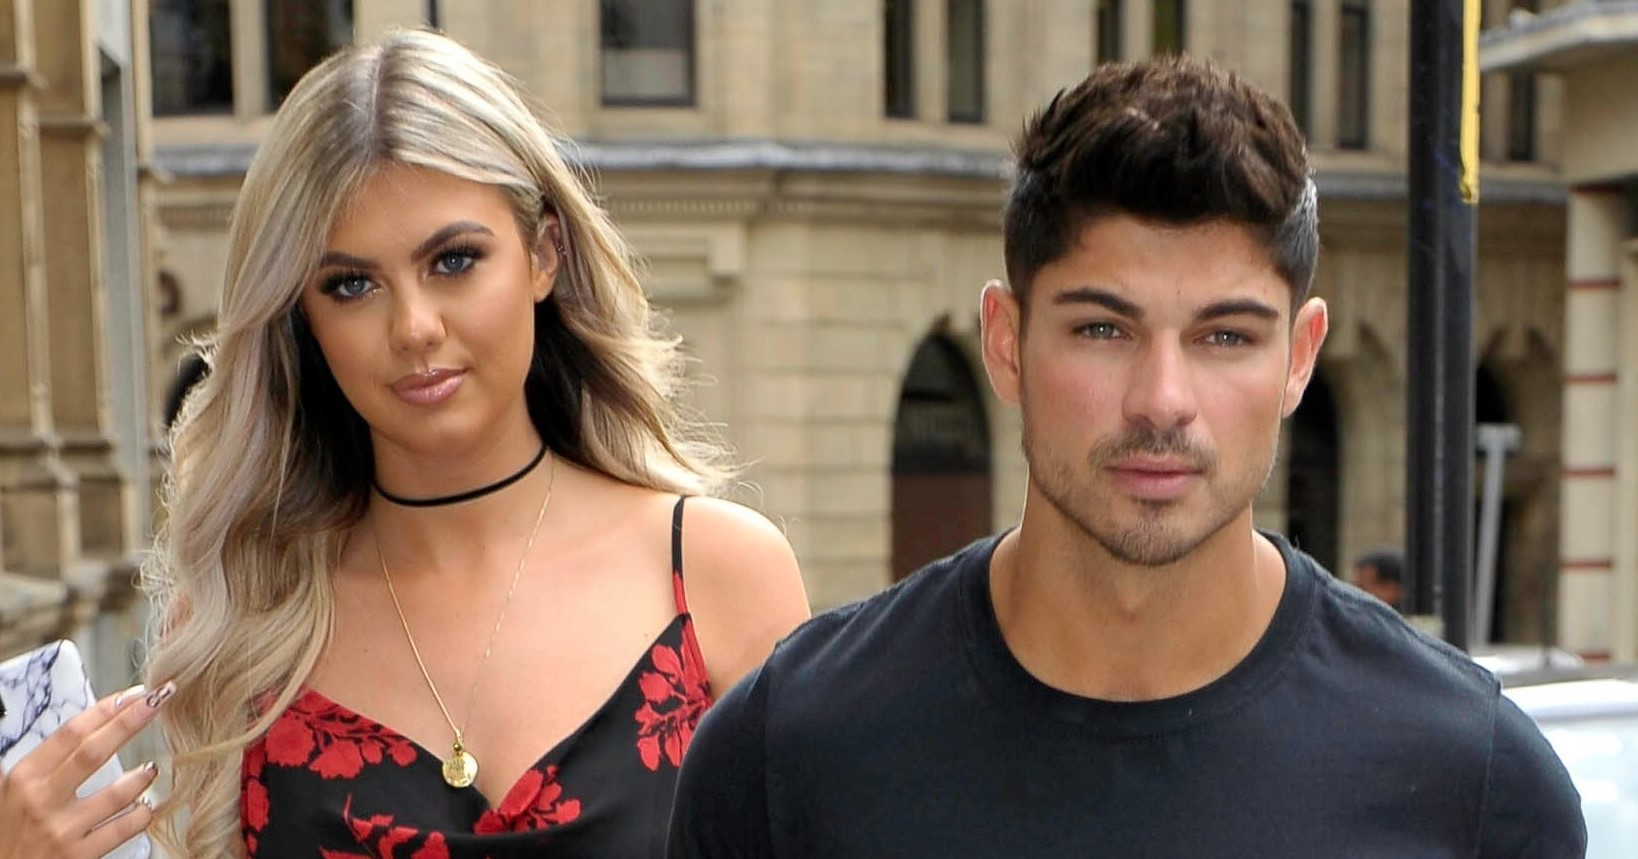 Love Island's Belle Hassan and Anton Danyluk headed for reunion after split?